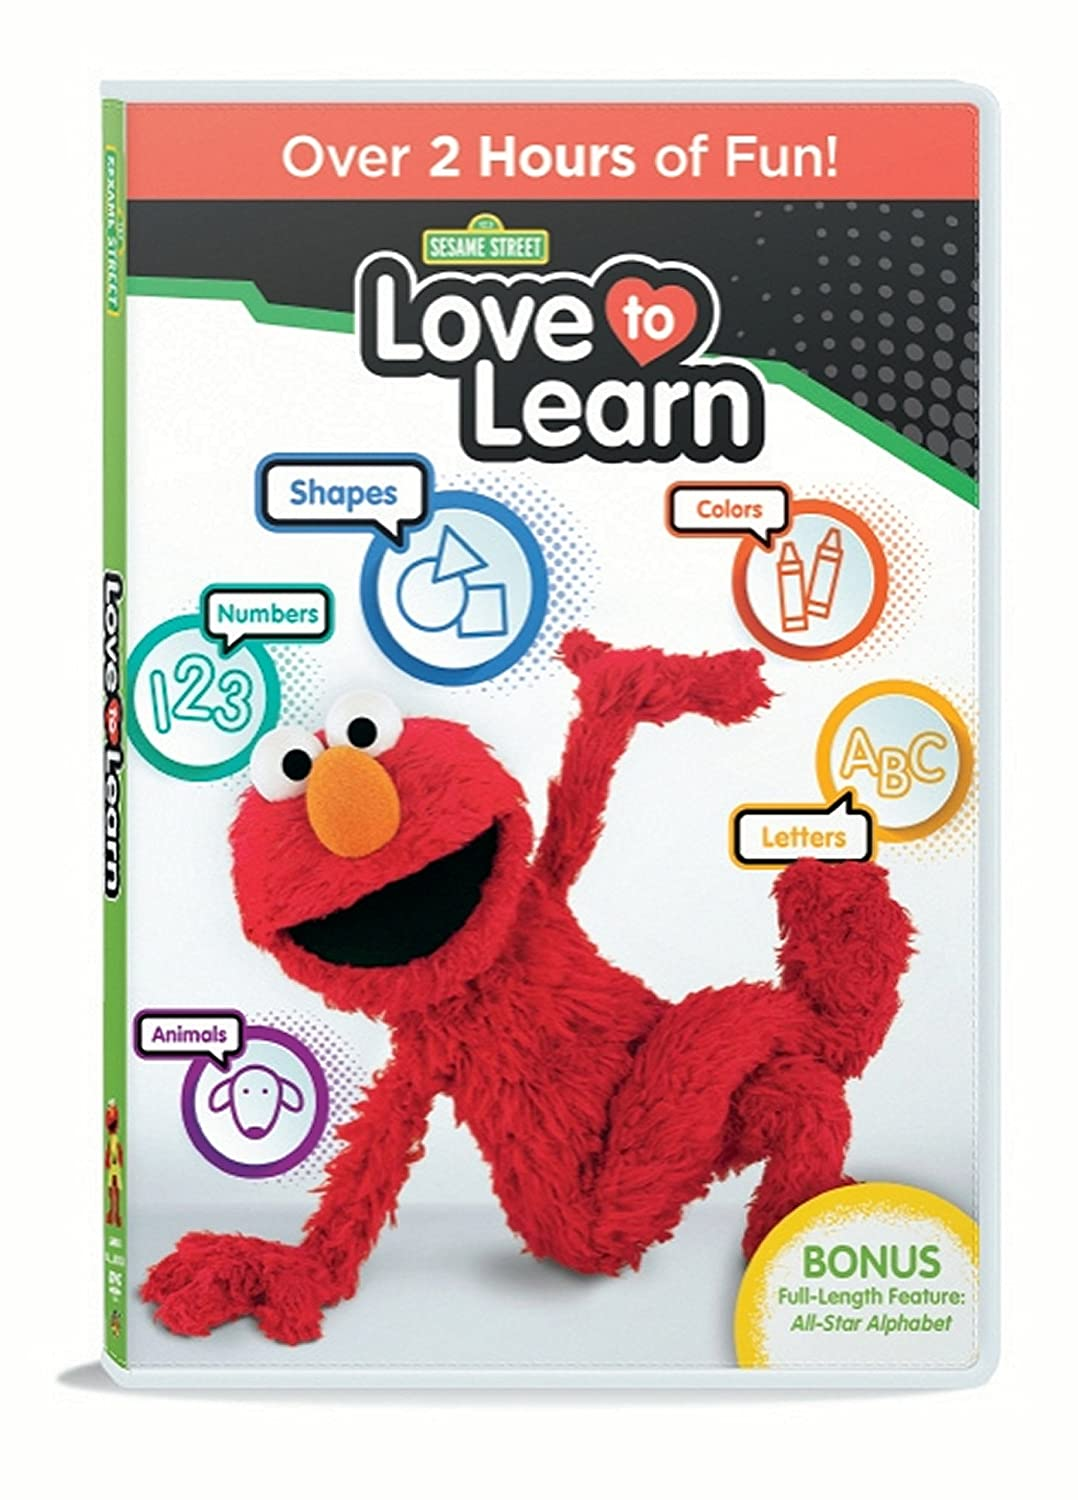 Get Your Copy of Sesame Street: Love To Learn DVD Today